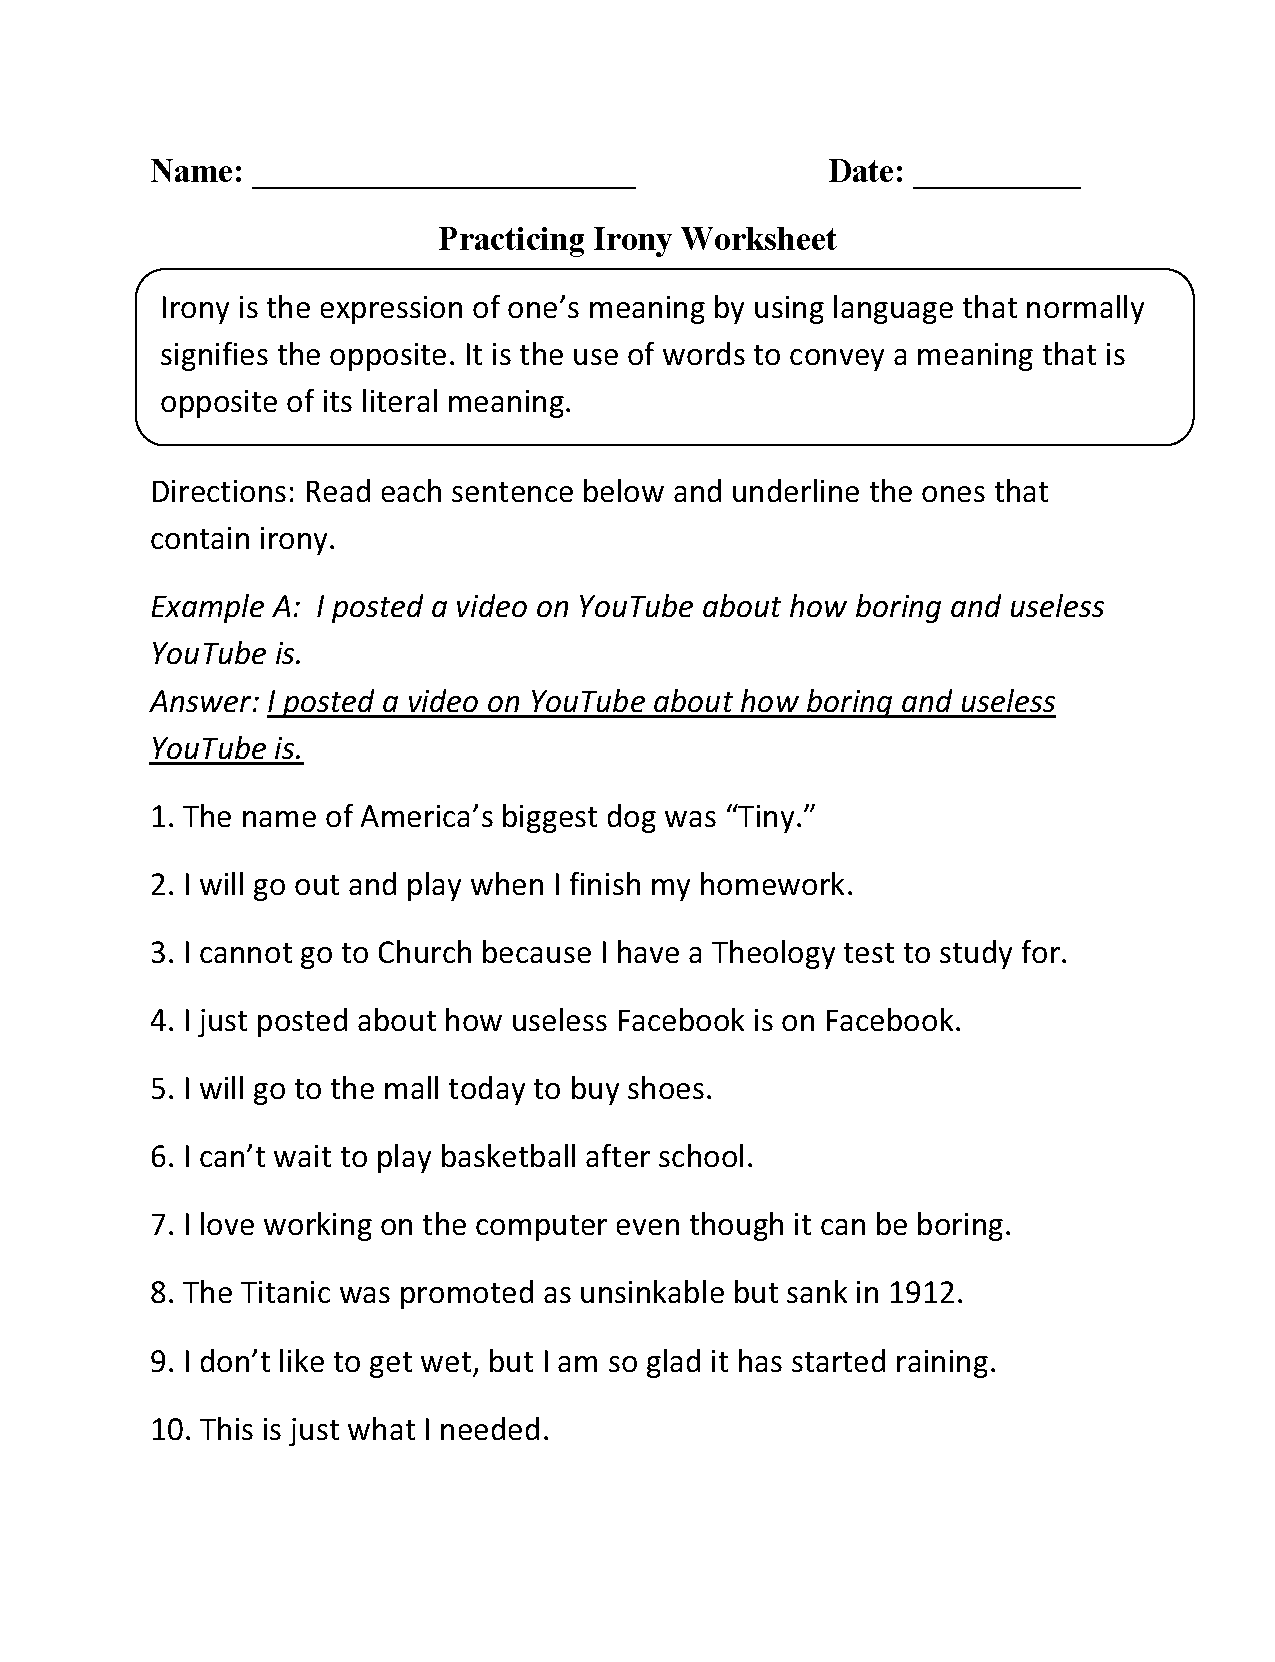 Worksheets Identifying Irony Worksheet figurative language worksheets irony practicing worksheet